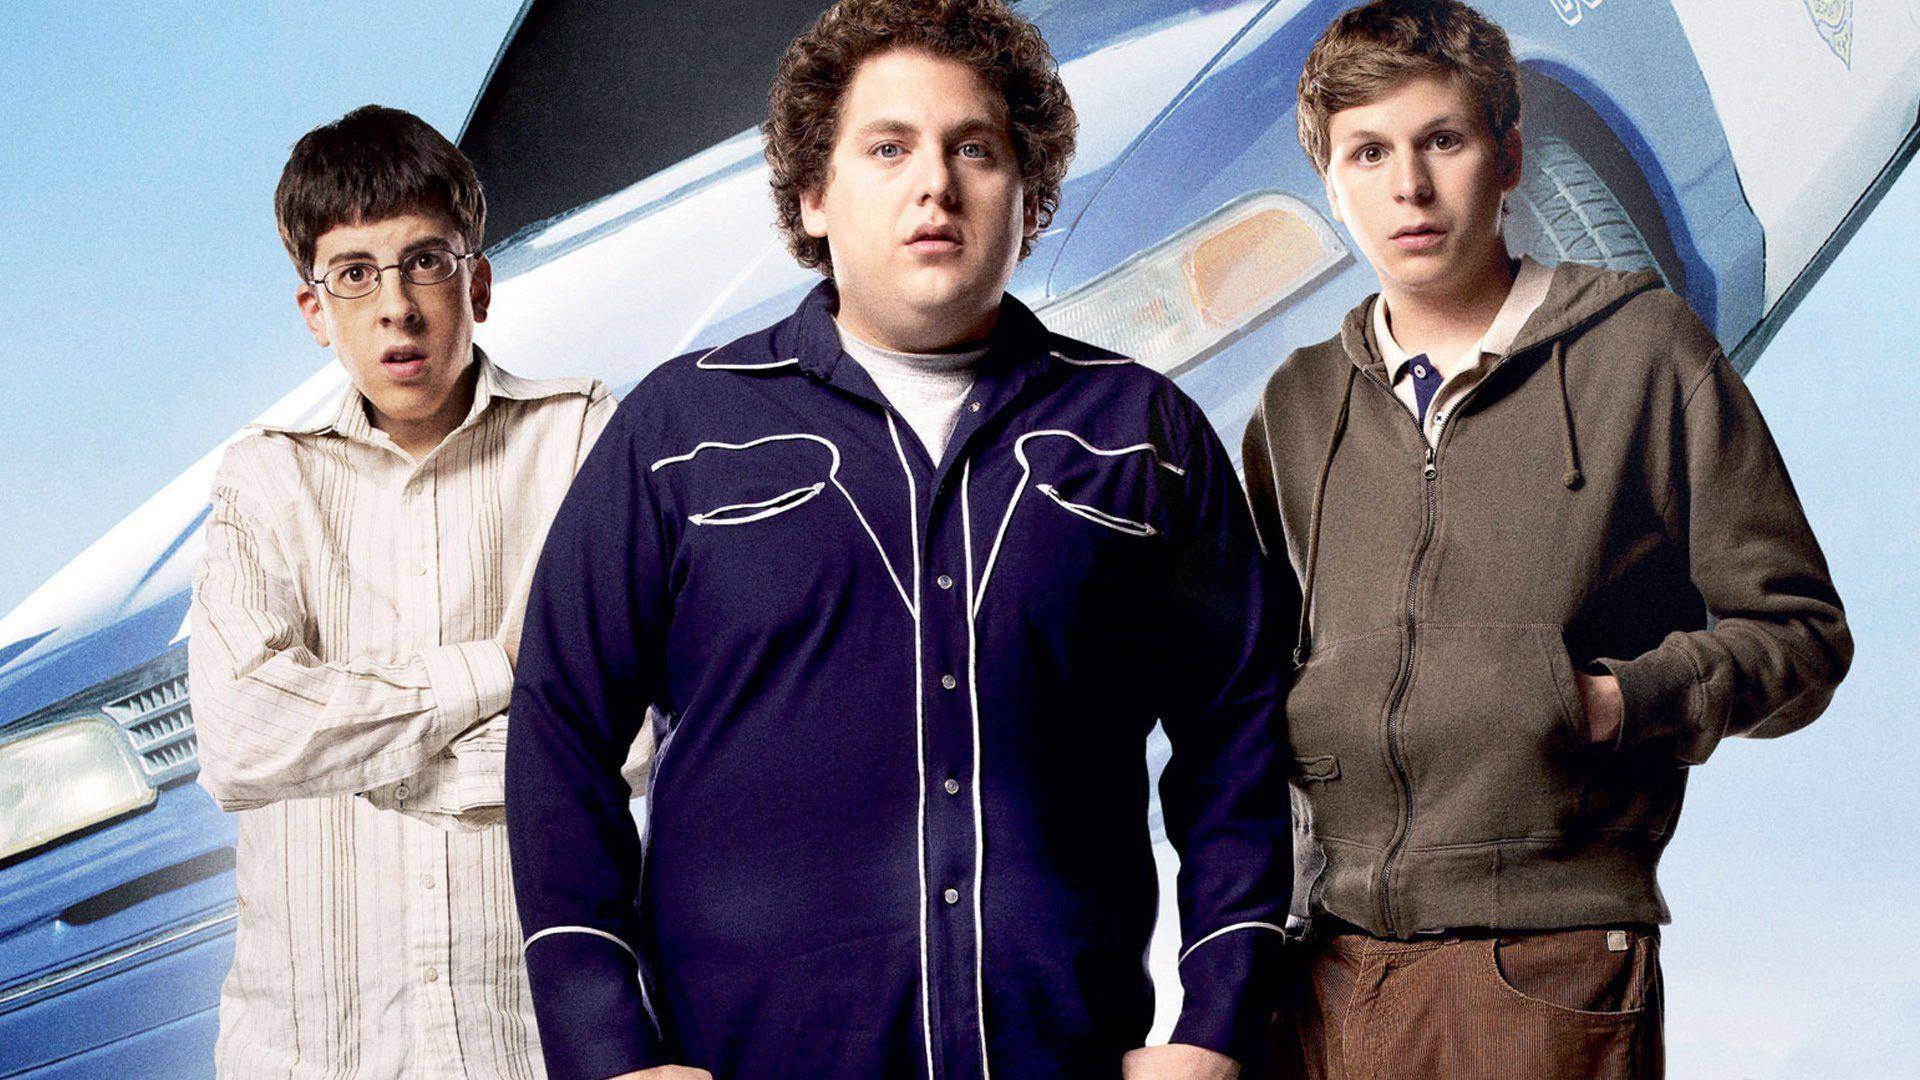 35 Jonah Hill HD Wallpapers | Backgrounds - Wallpaper Abyss